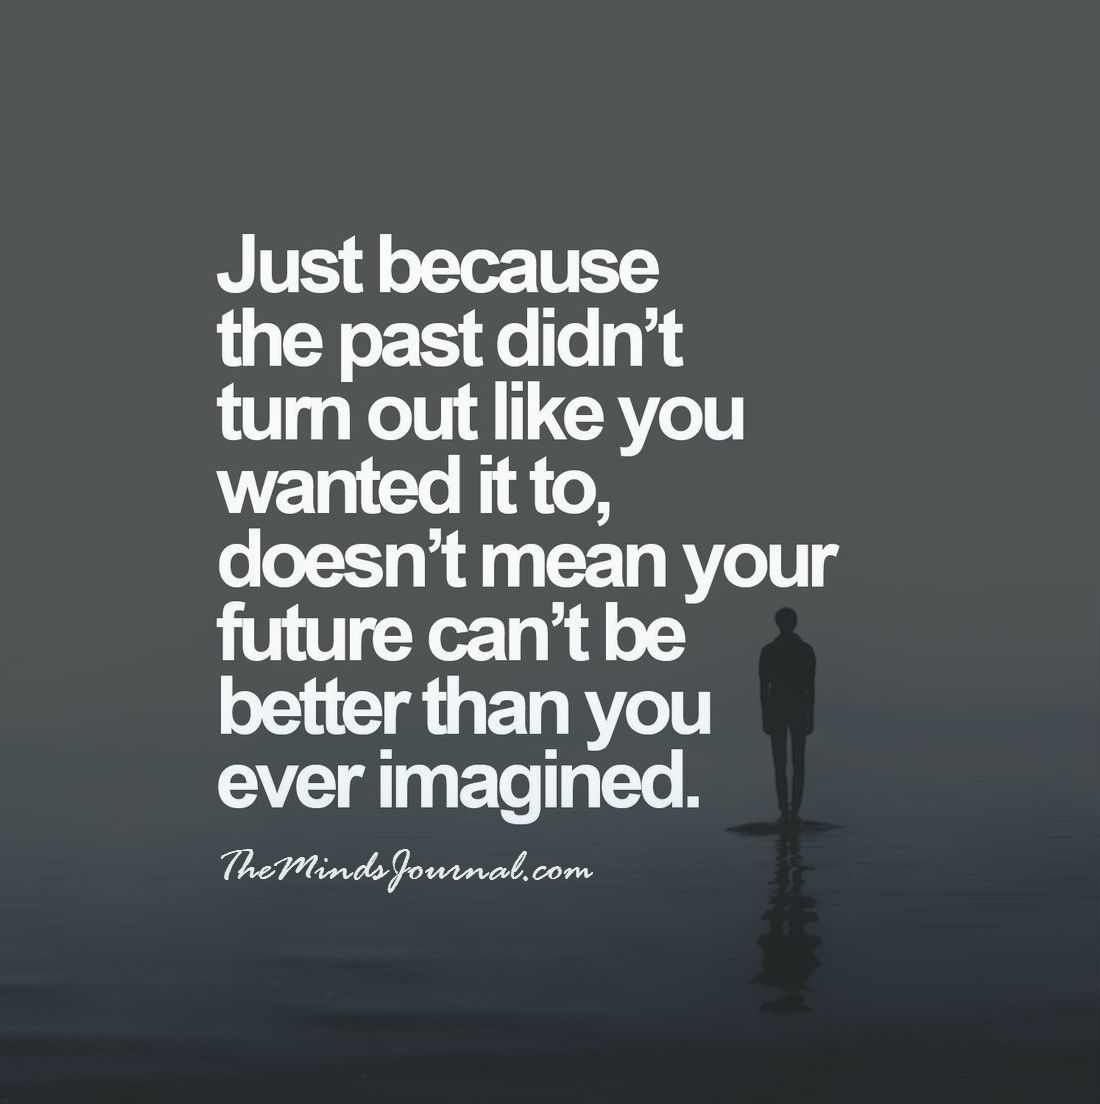 Just because your past didn't work out